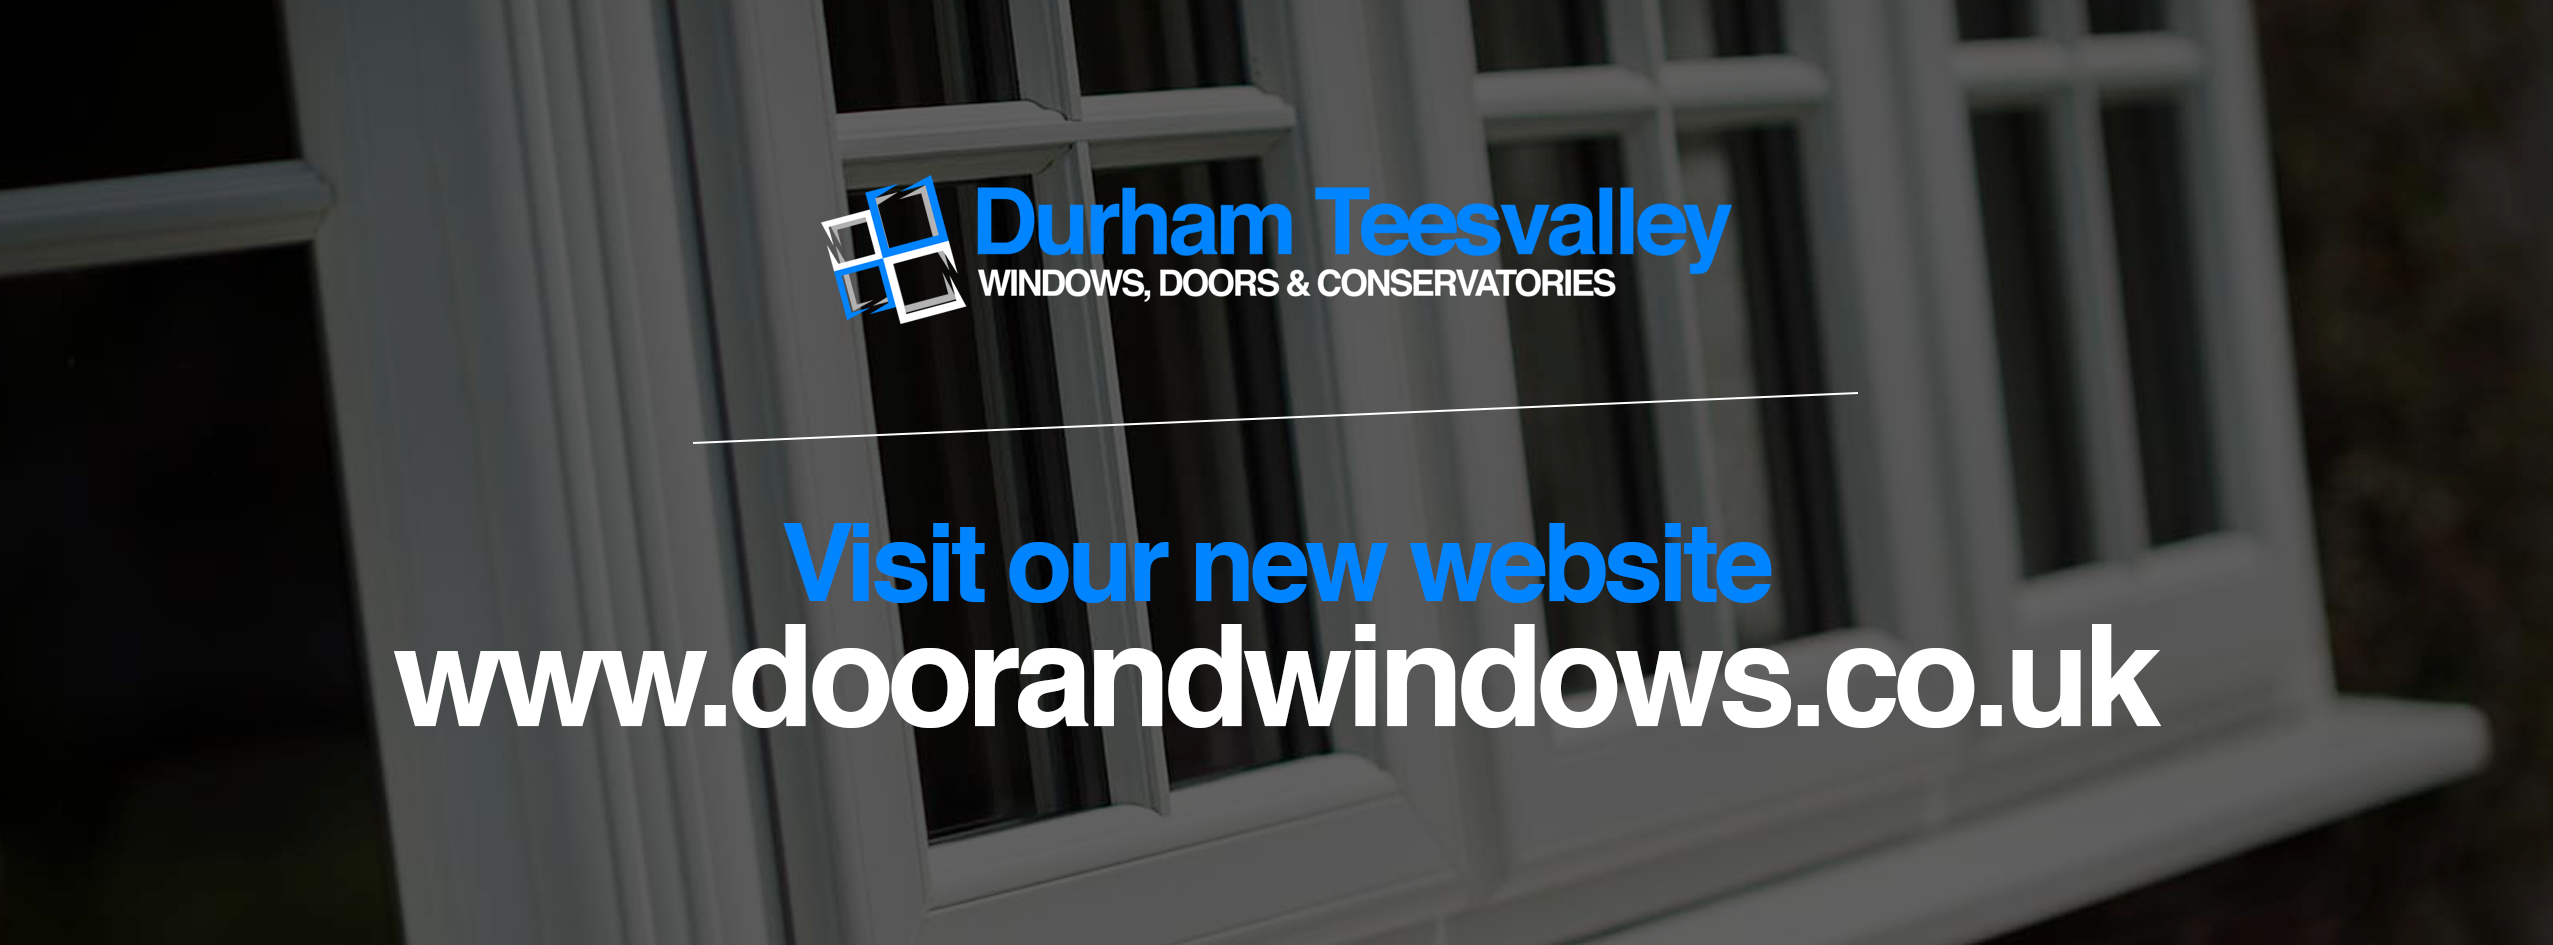 Durham Tees Valley Windows Doors & Conservatories | Unit 5 Vulcan Street, Darlington DL1 2UL | +44 1325 749545